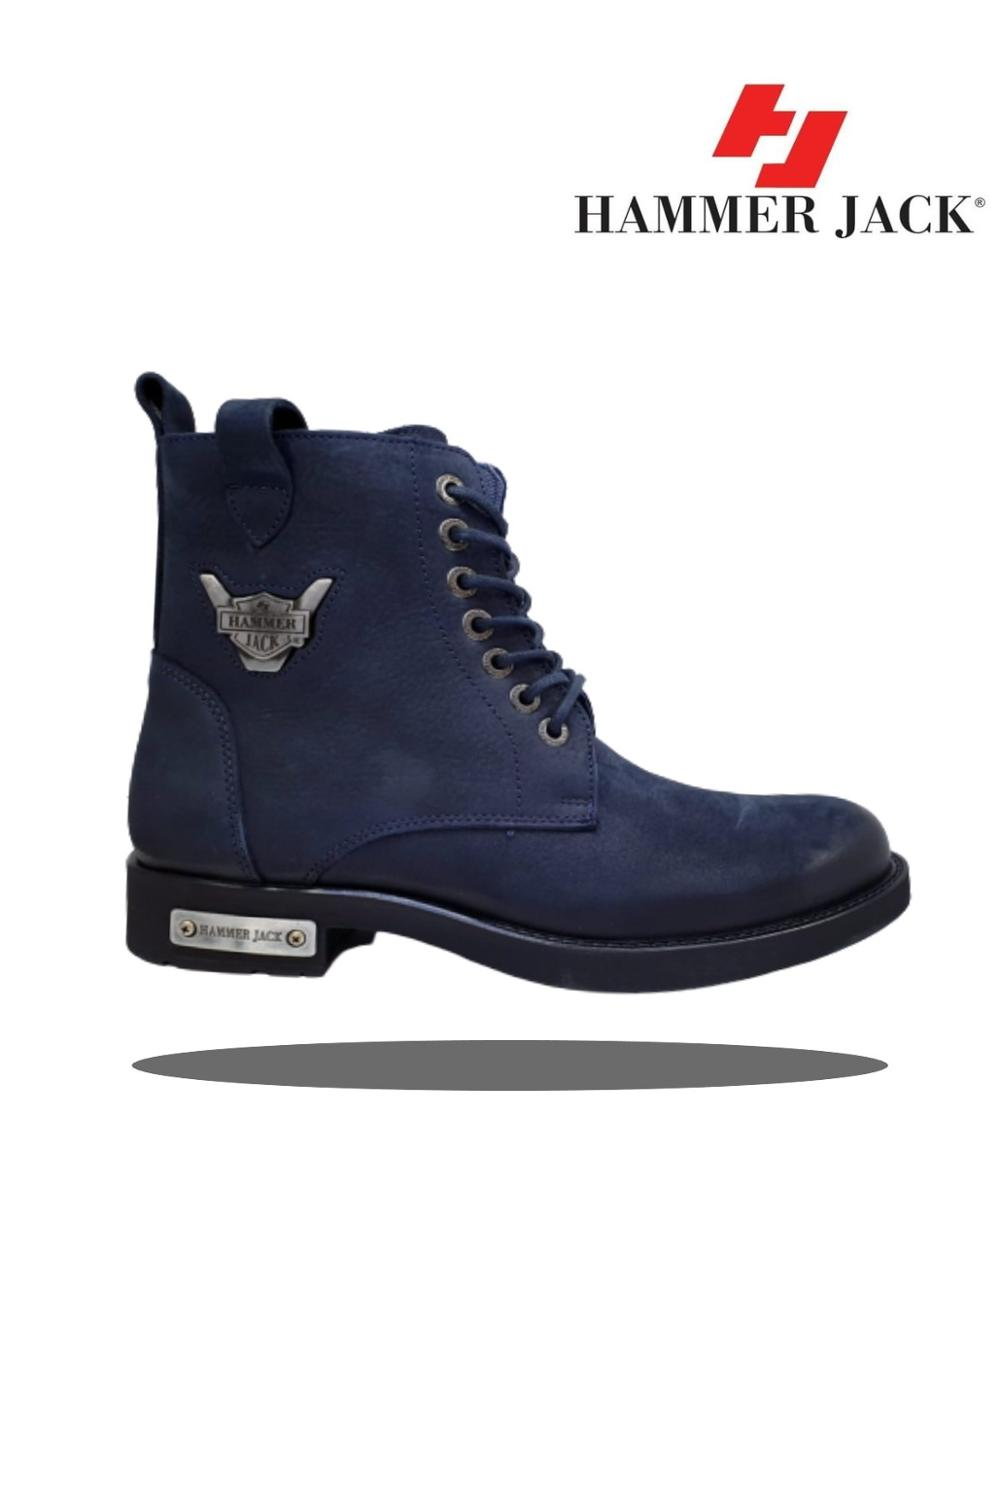 Hammer Jack Male Genuine Leather Boots 102 15200-M